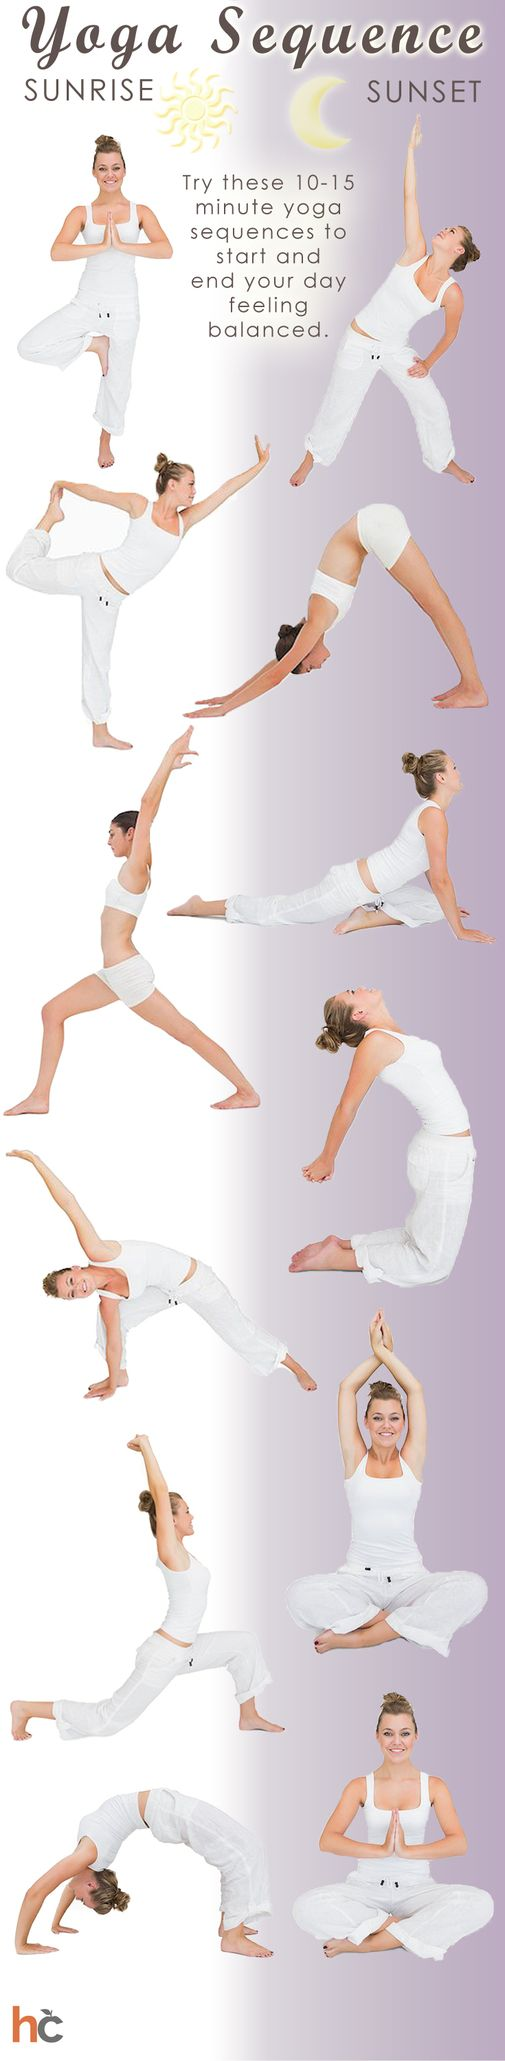 Yoga sequence for morning and night -- fitness design